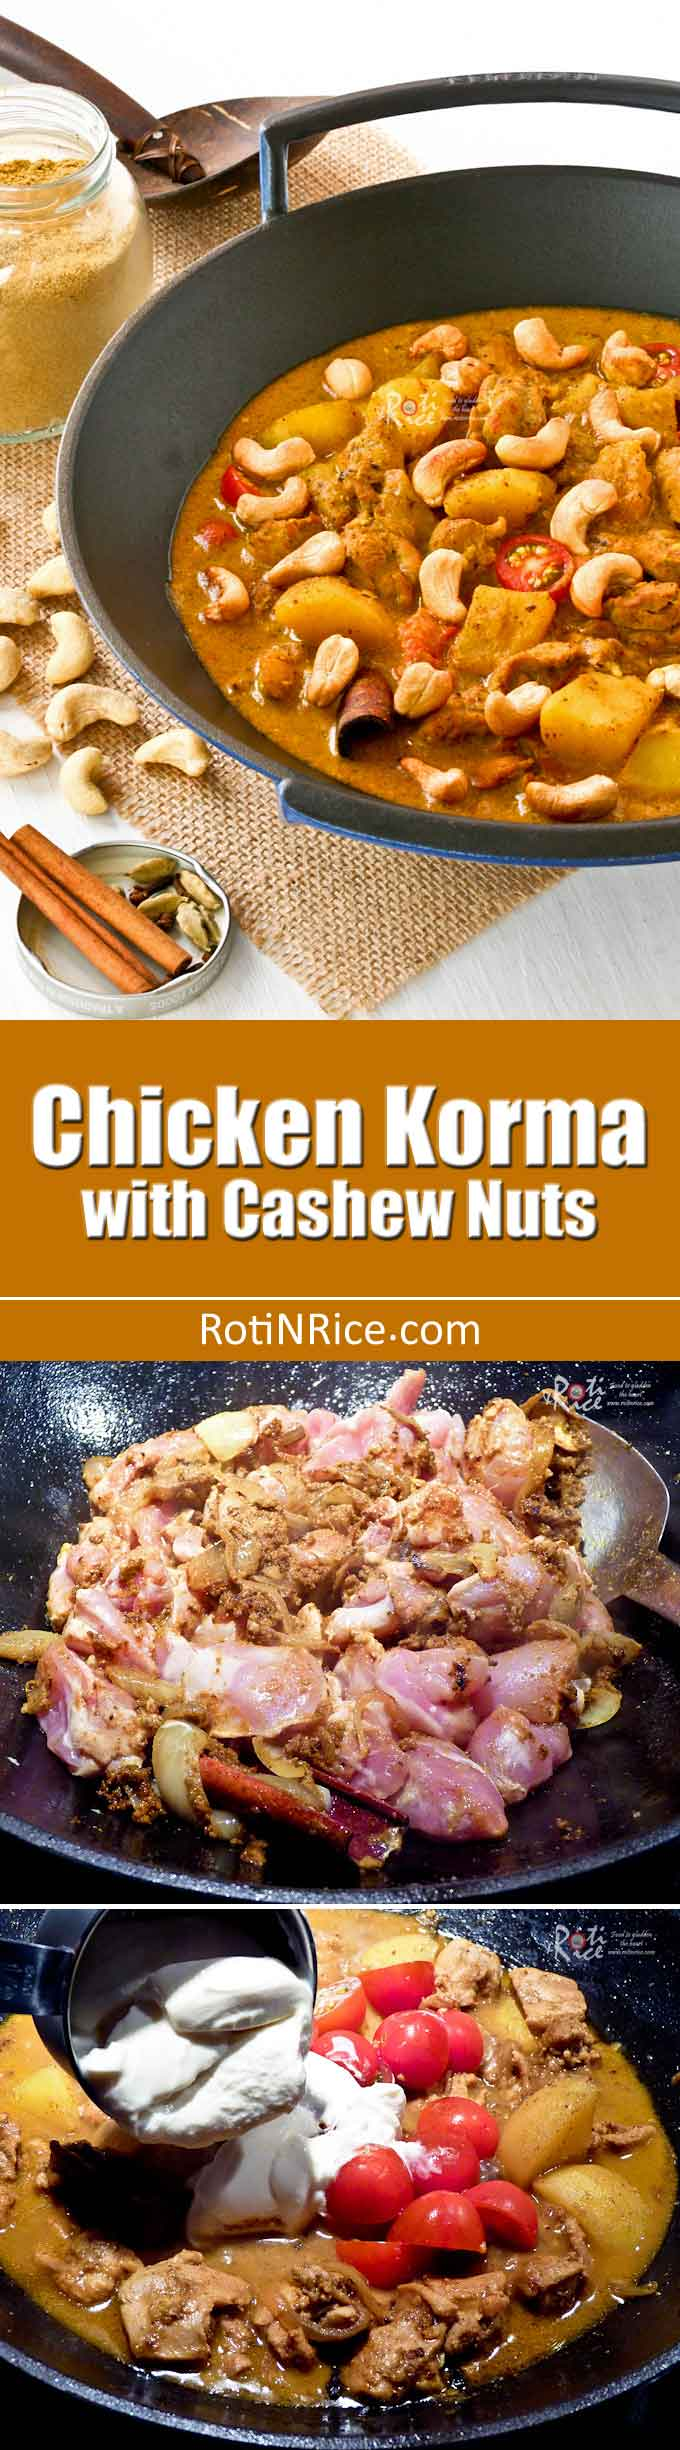 This creamy and fragrant Chicken Korma with Cashew Nuts is perfect for those with a milder palate. It is delicious served with fluffy steamed basmati rice. | RotiNRice.com